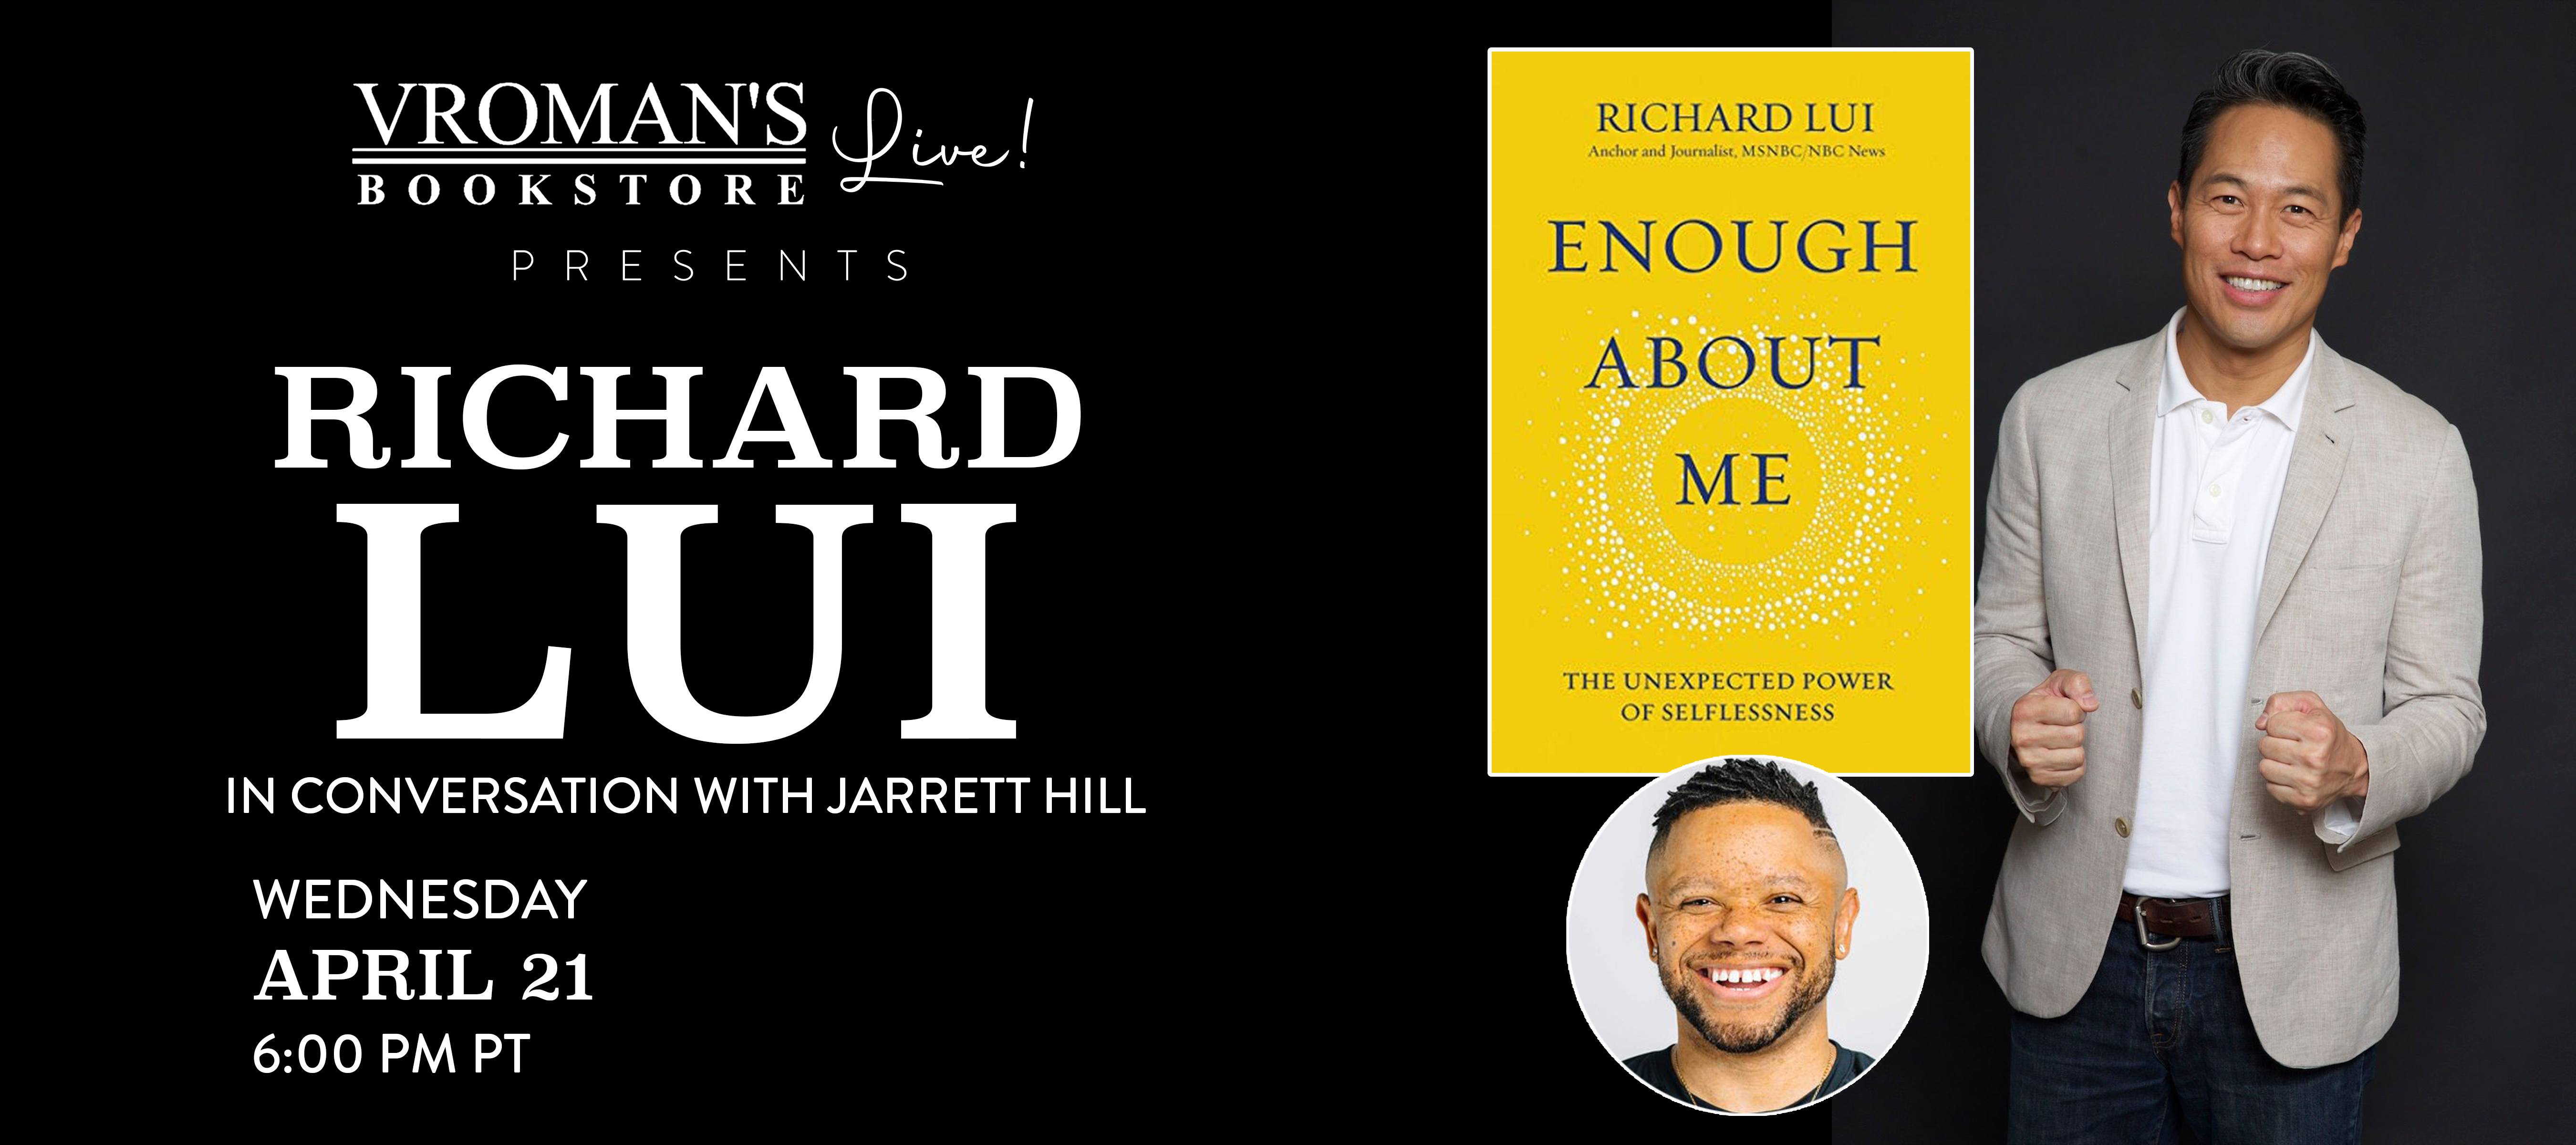 Richard Lui, in conversation with Jarrett Hill, on Wednesday April 21 at 6pm